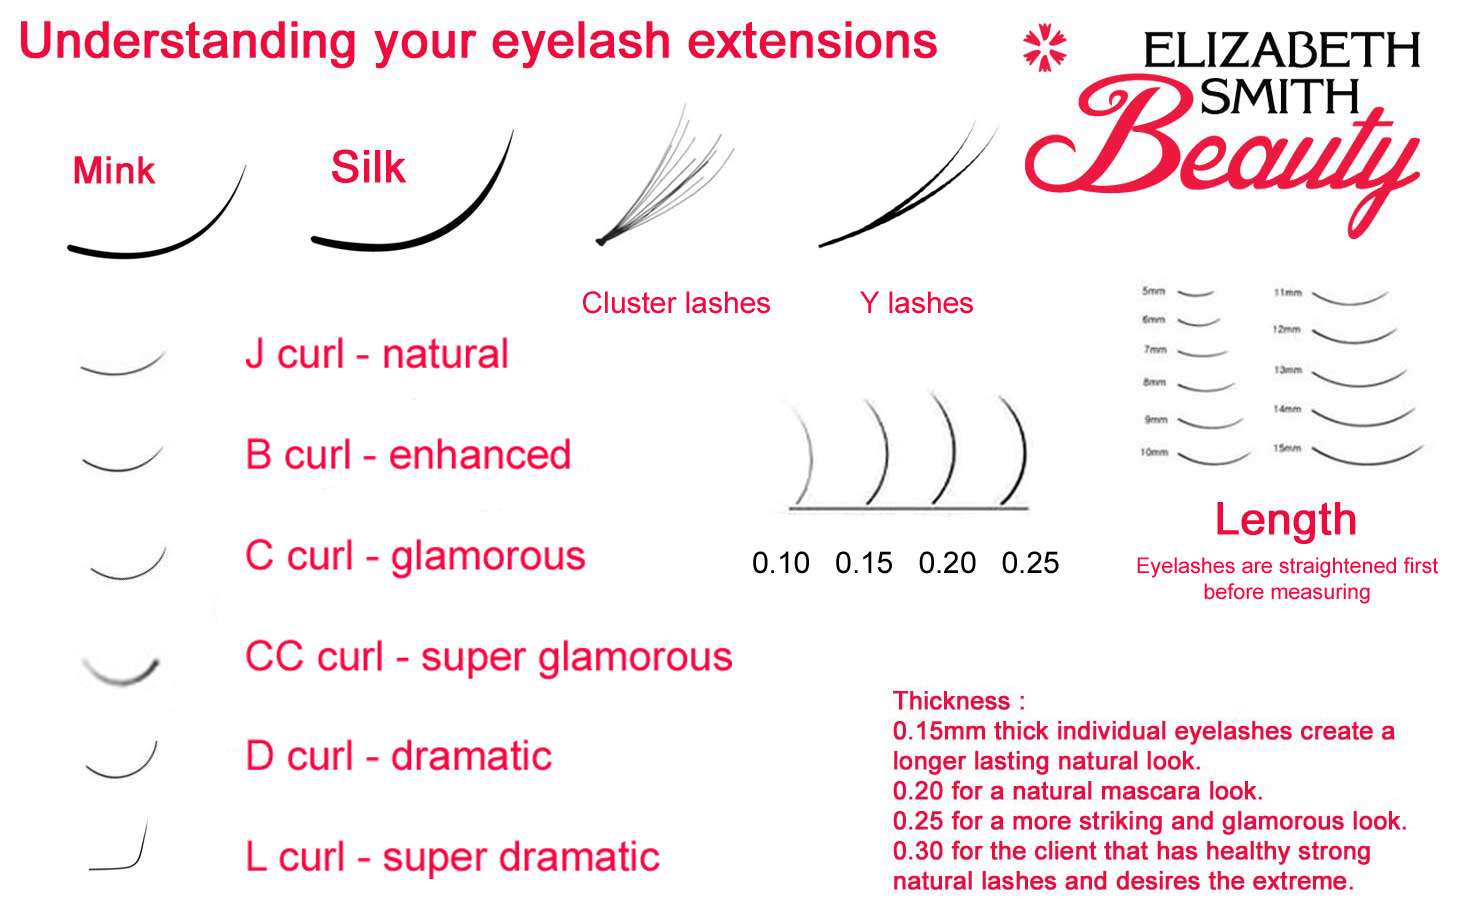 Understanding your eyelash extensions - Elizabeth Smith Beauty